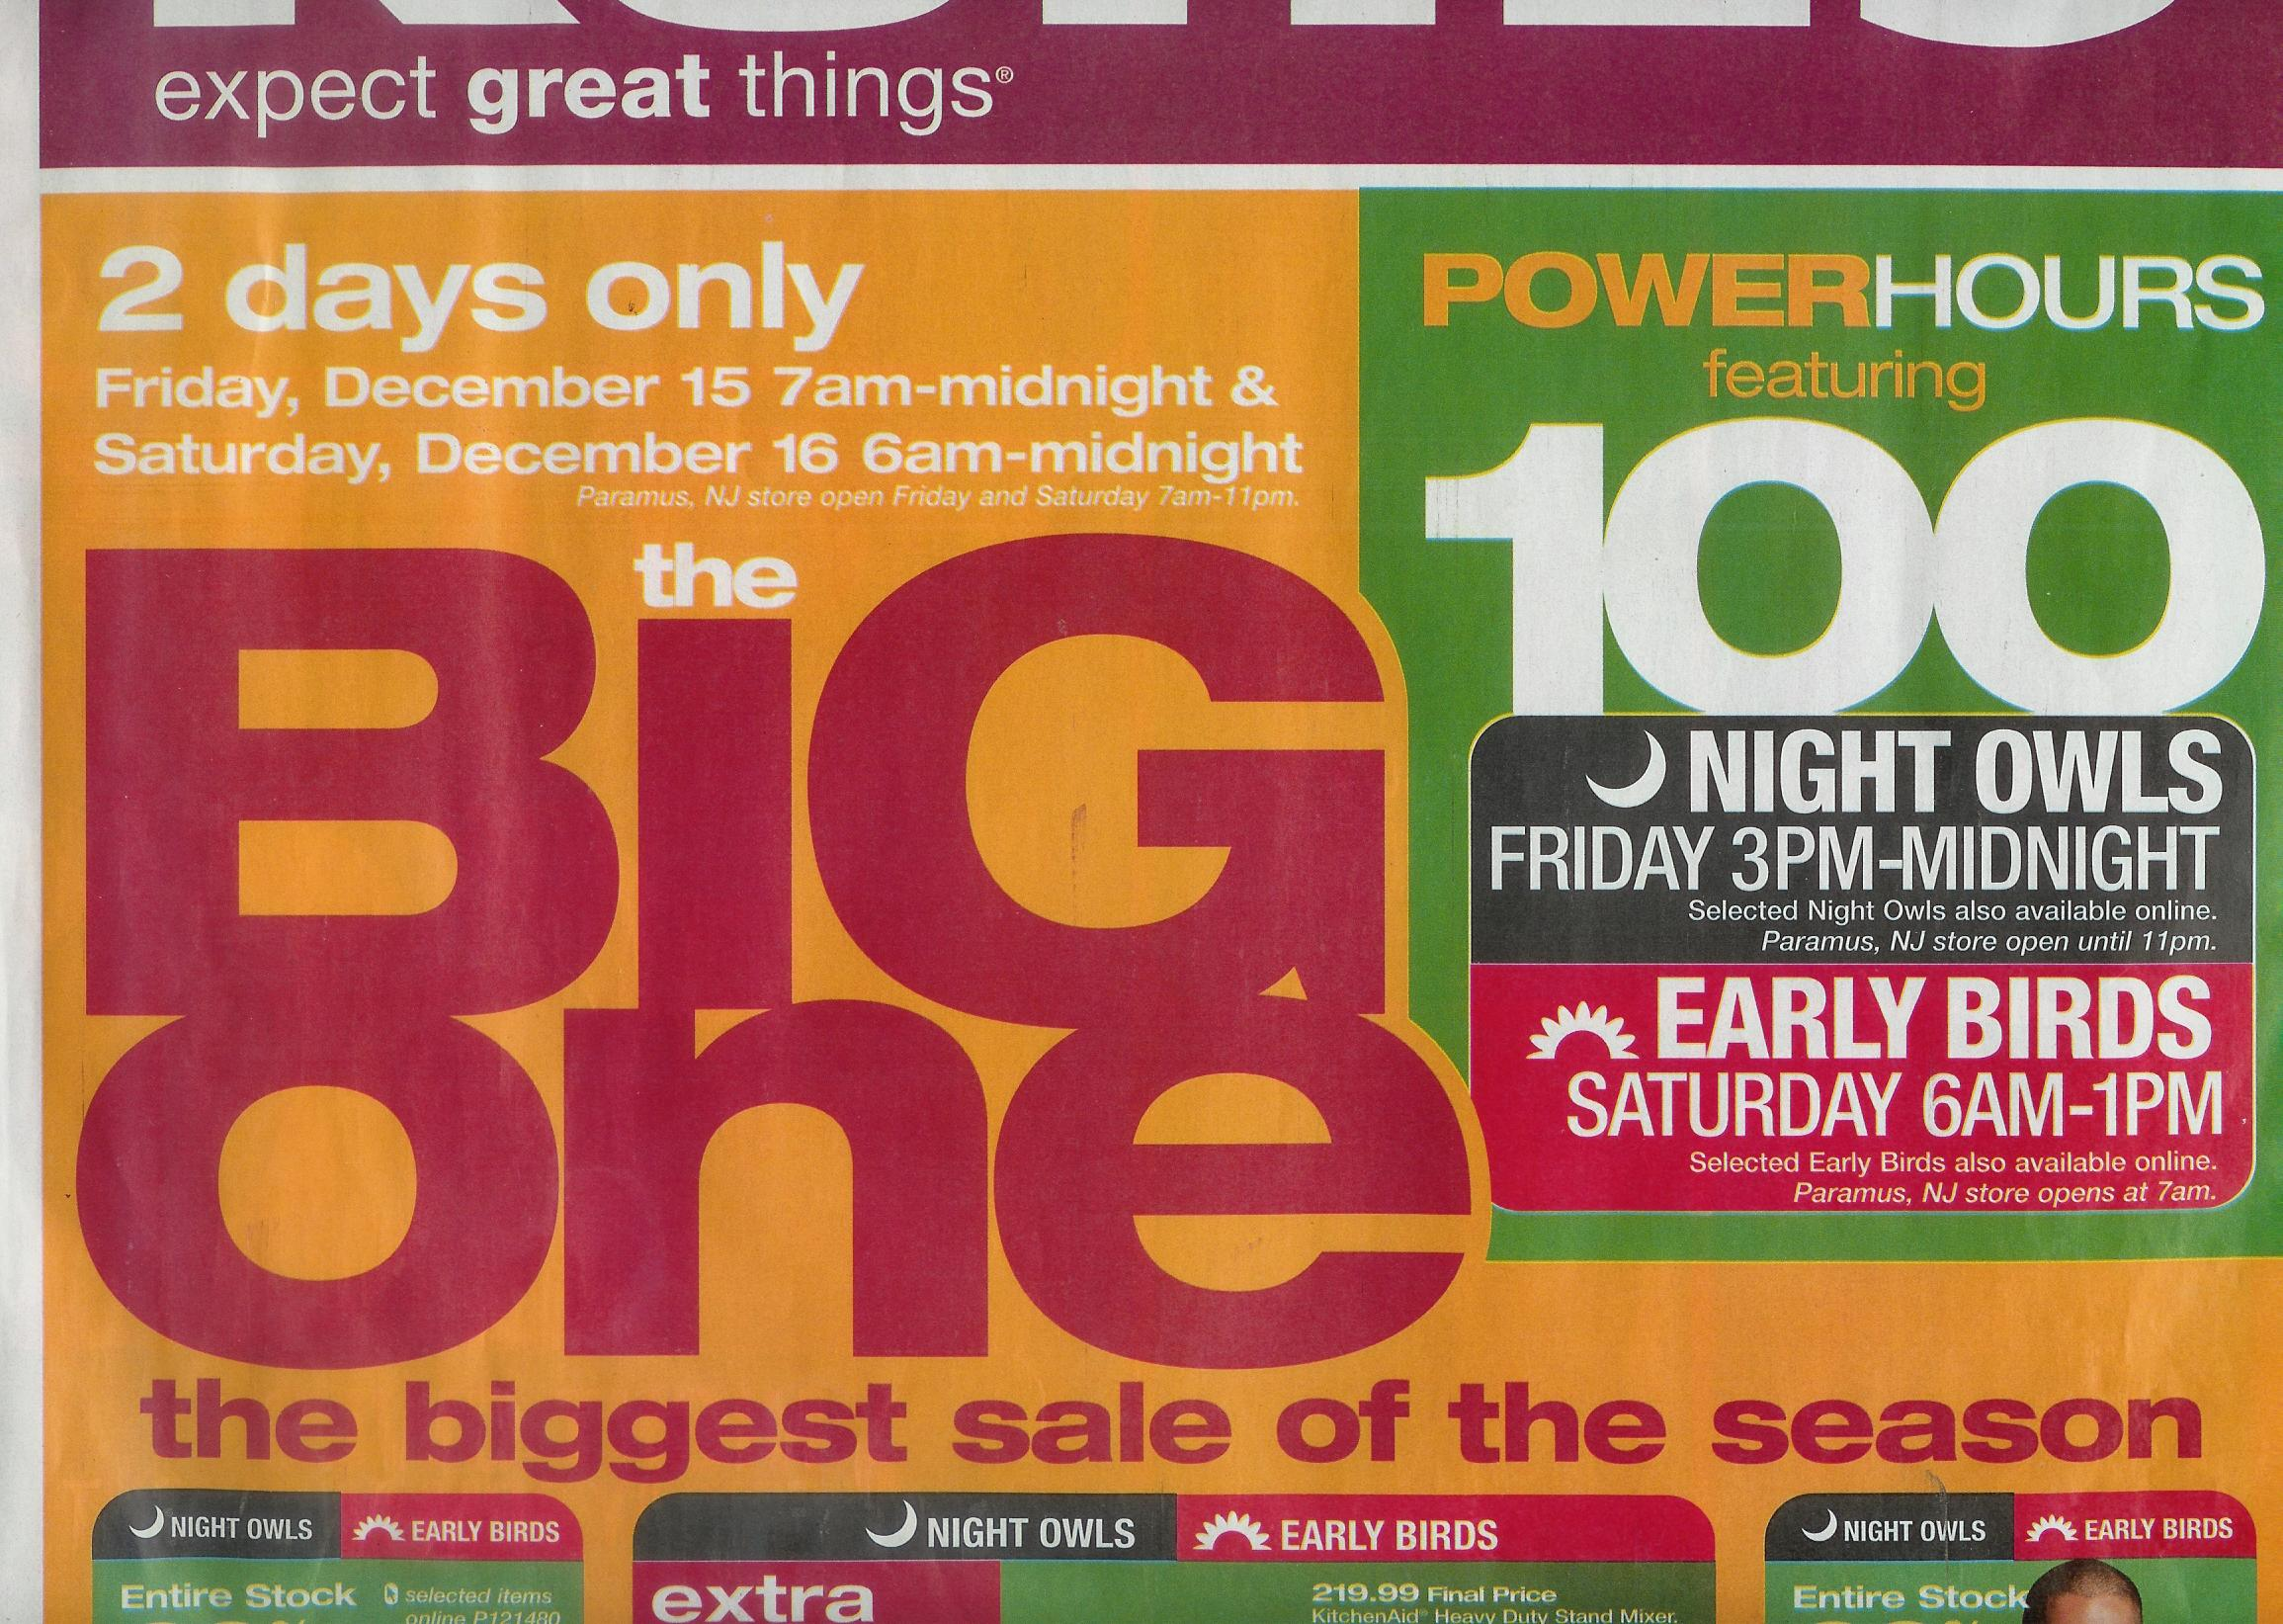 kohls-_-the-big-one